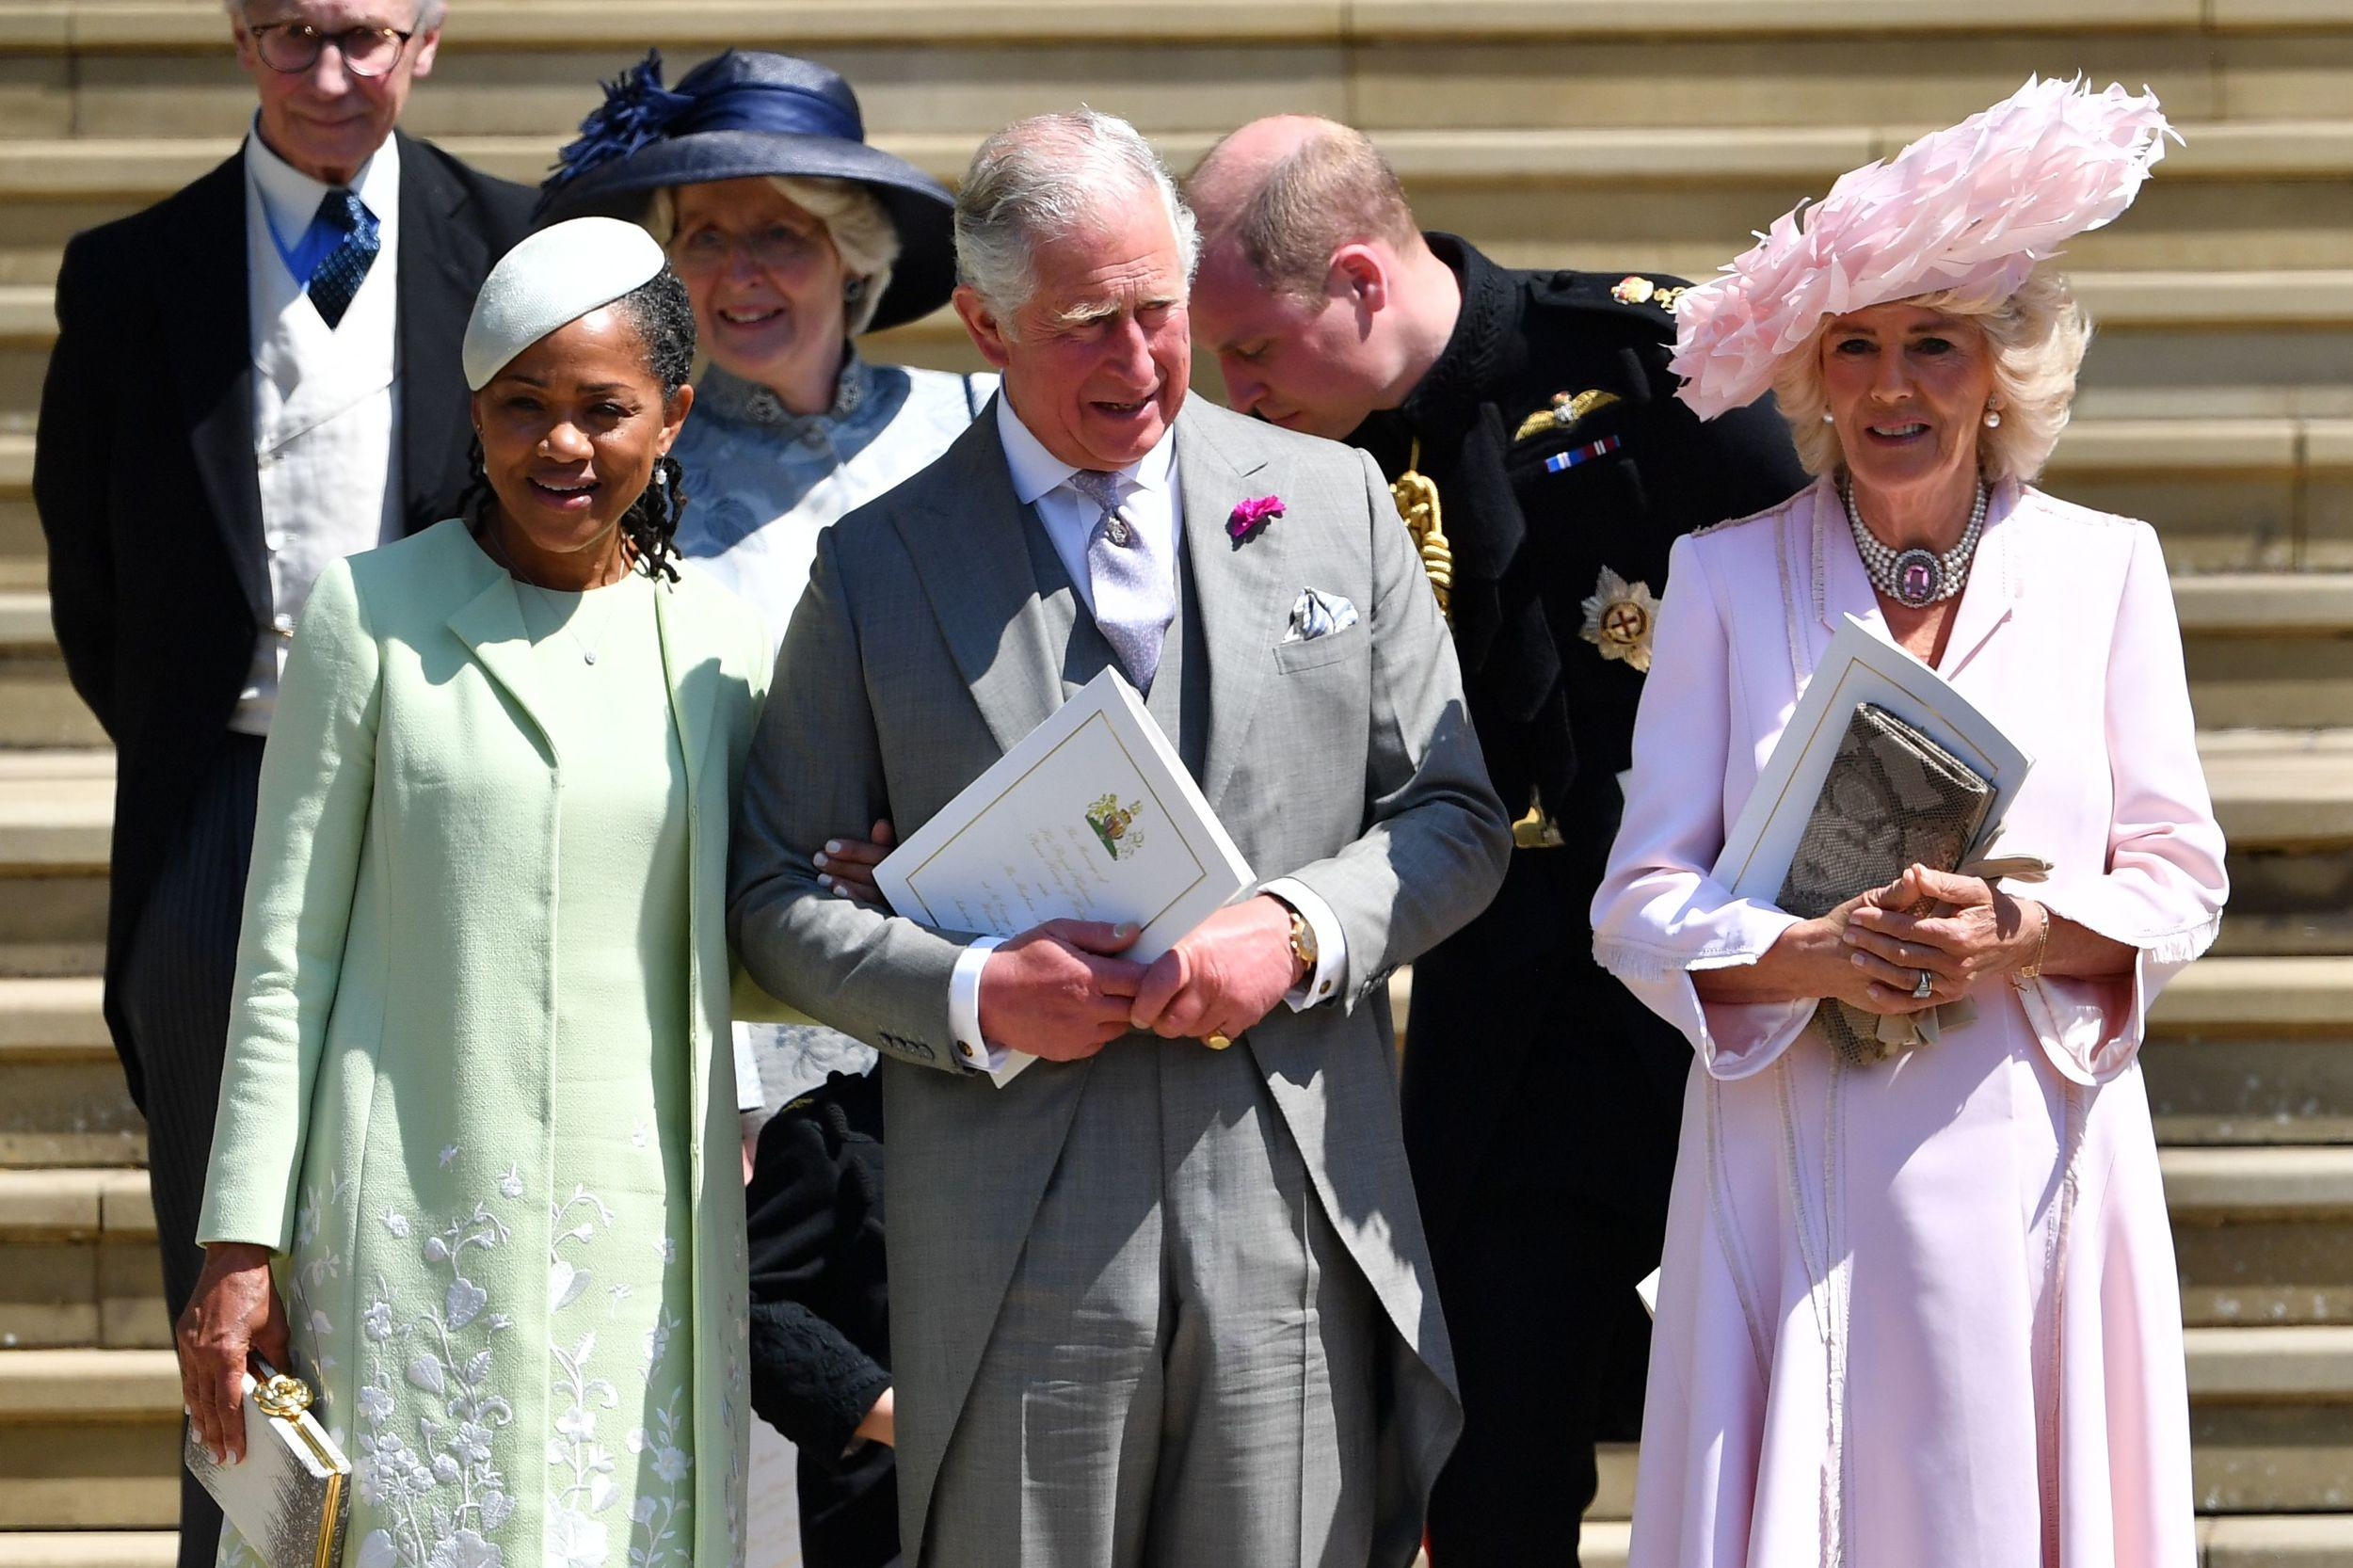 <p>Meghan Markle's mother Doria Ragland, Britain's Prince Charles, Prince of Wales and Britain's Camilla, Duchess of Cornwall leave the wedding ceremony of Britain's Prince Harry, Duke of Sussex and Meghan Markle.</p>  <p>(Photo by Ben STANSALL / POOL / AFP)</p>